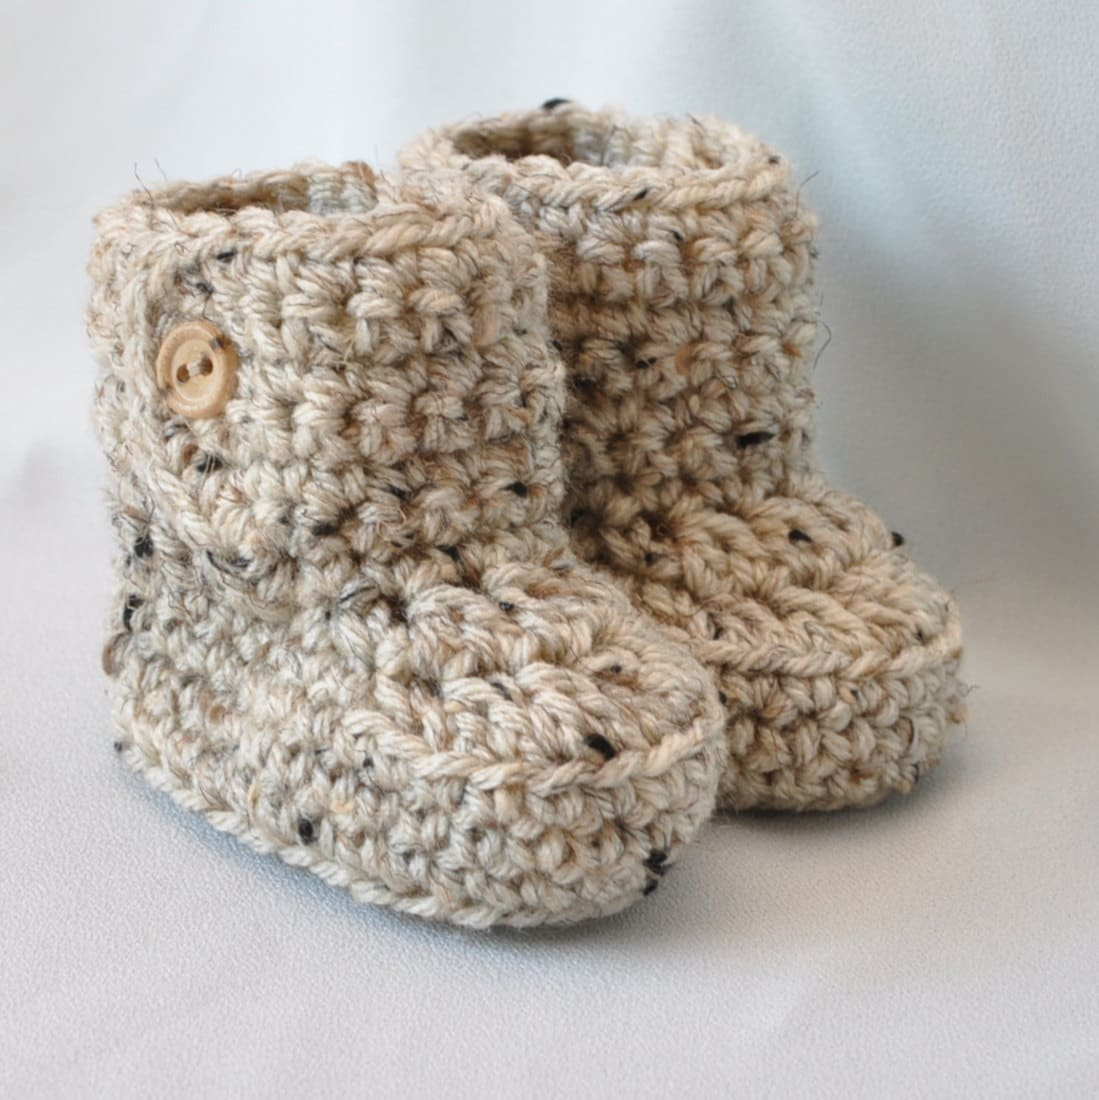 Crochet Baby Booties Pattern For Free : Baby Booties Crochet Baby Boots with button top size 0 to 6